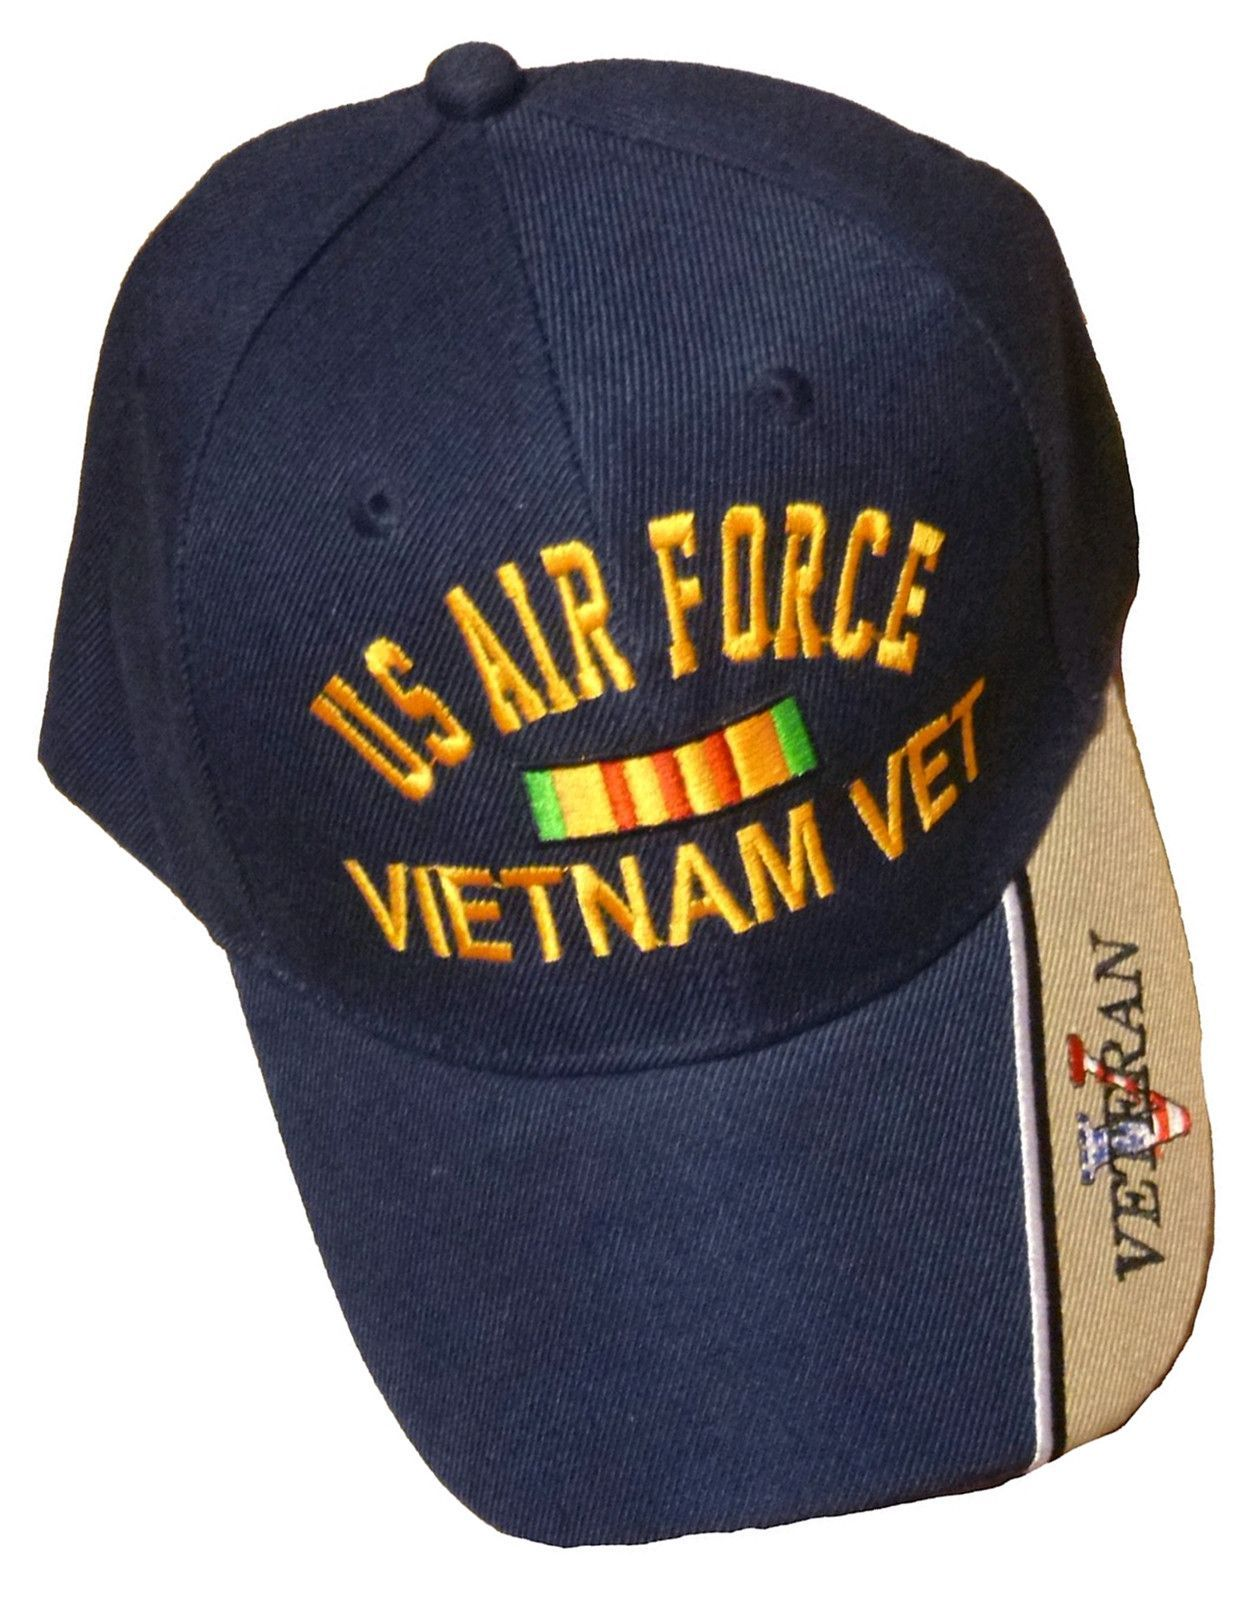 3372ac5e3b58d US Air Force Vietnam Vet Baseball Cap Blue and Tan Embroidered Military  Logo Veteran Hat